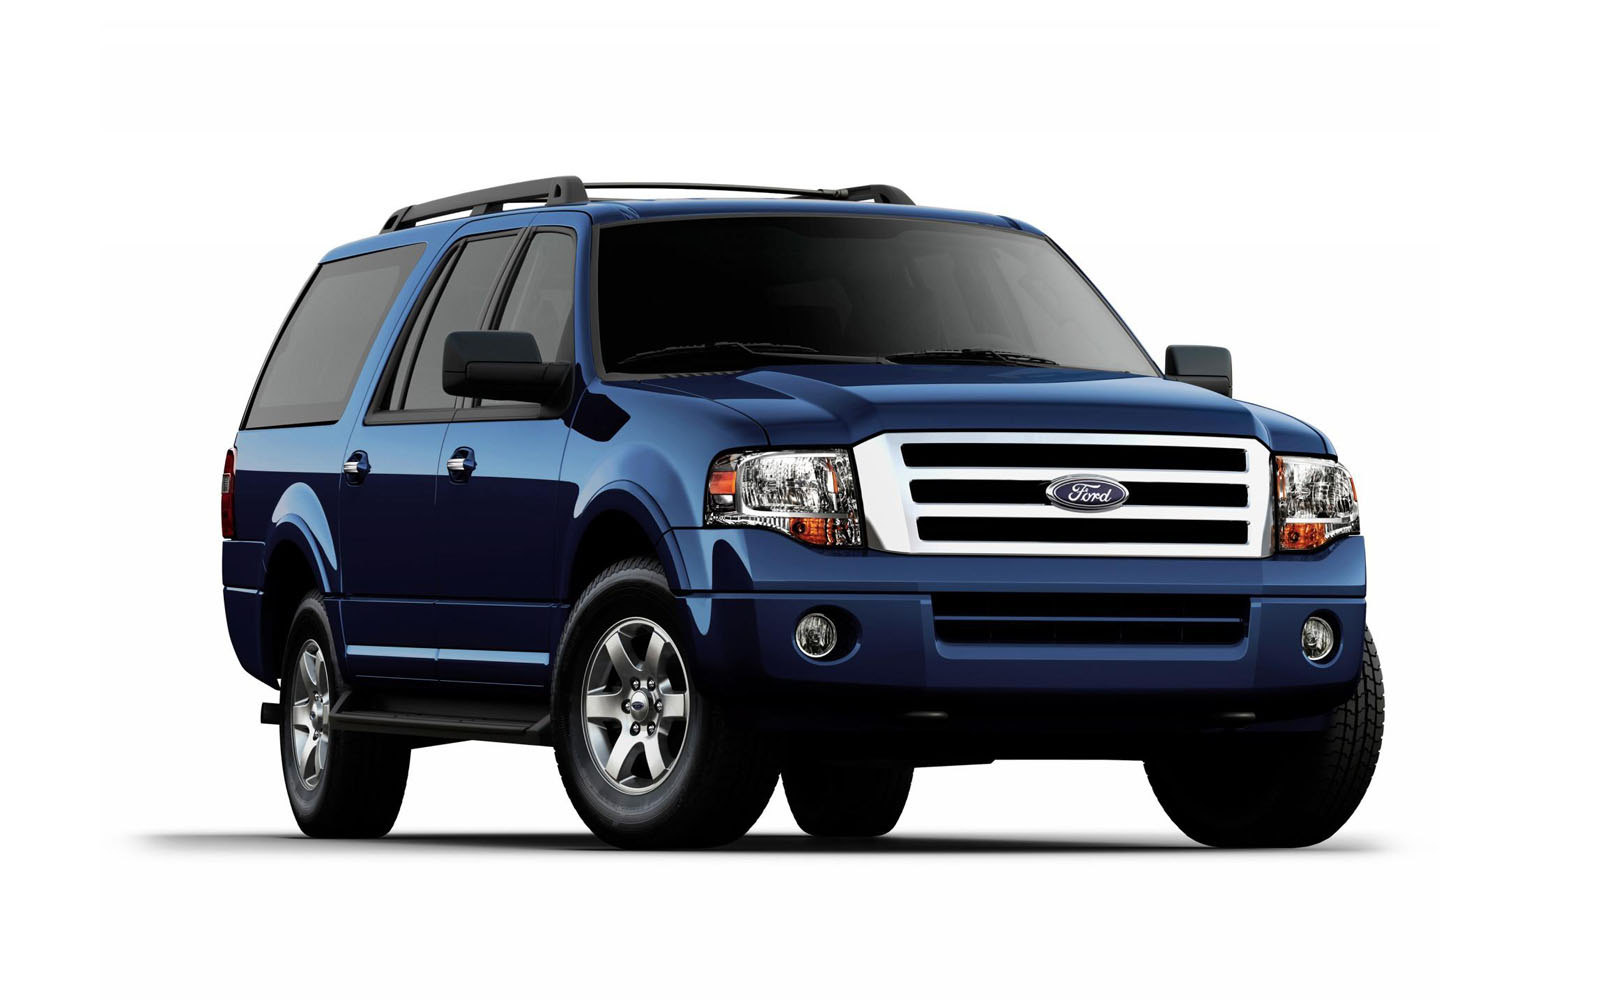 Full Hd Car Wallpapers 2014 Wallpapers Ford Expedition Suv Car Wallpapers